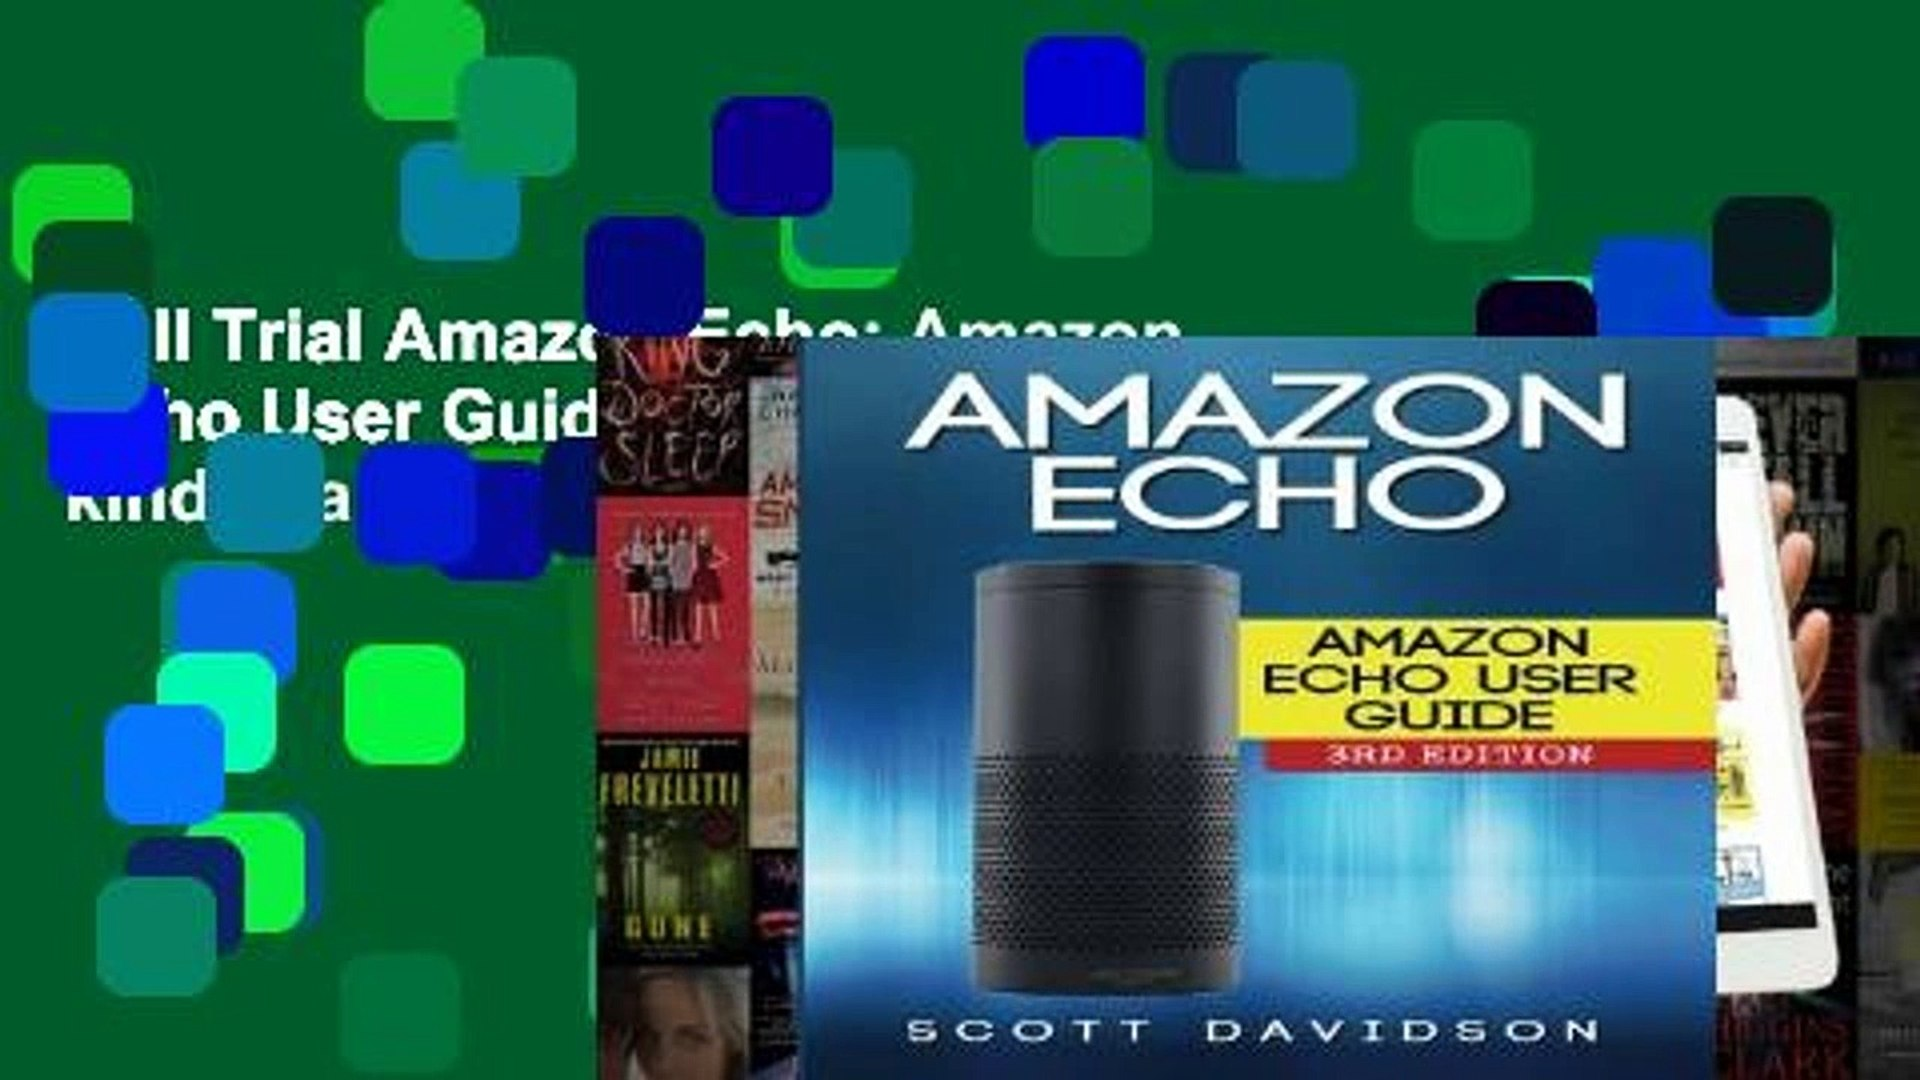 Full Trial Amazon Echo: Amazon Echo User Guide (Technology,Mobile, Communication, kindle, alexa,